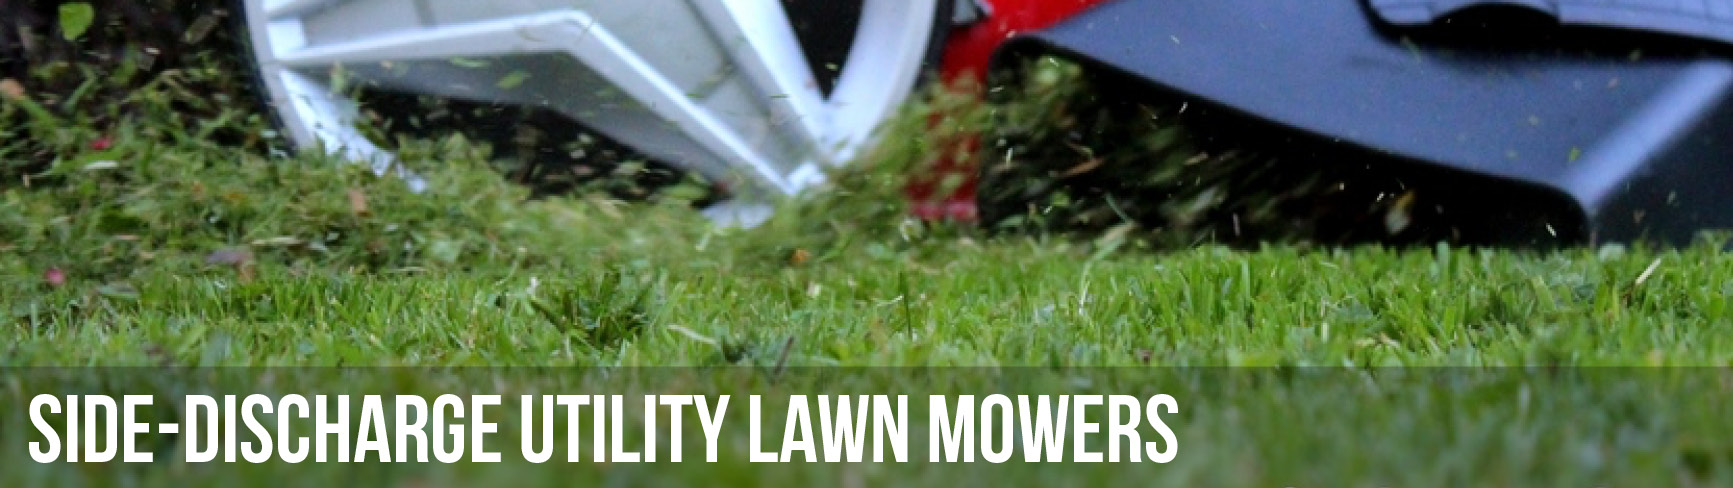 category_top_lawnmowers_SD